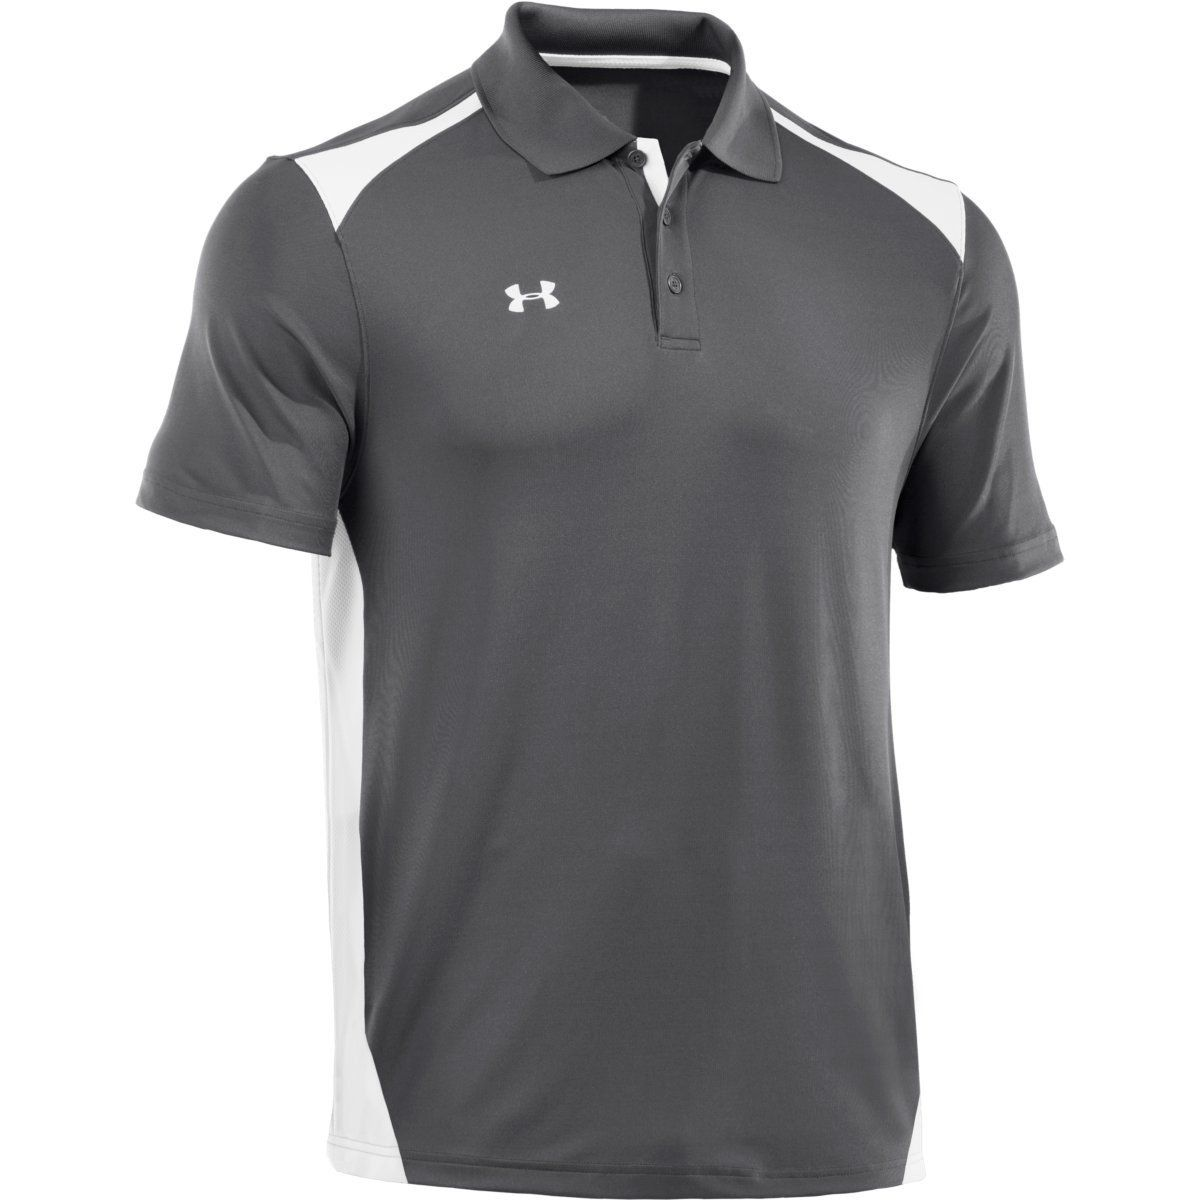 Under Armour Men s Graphite White Colorblock Polo  54a1c6e2892c2